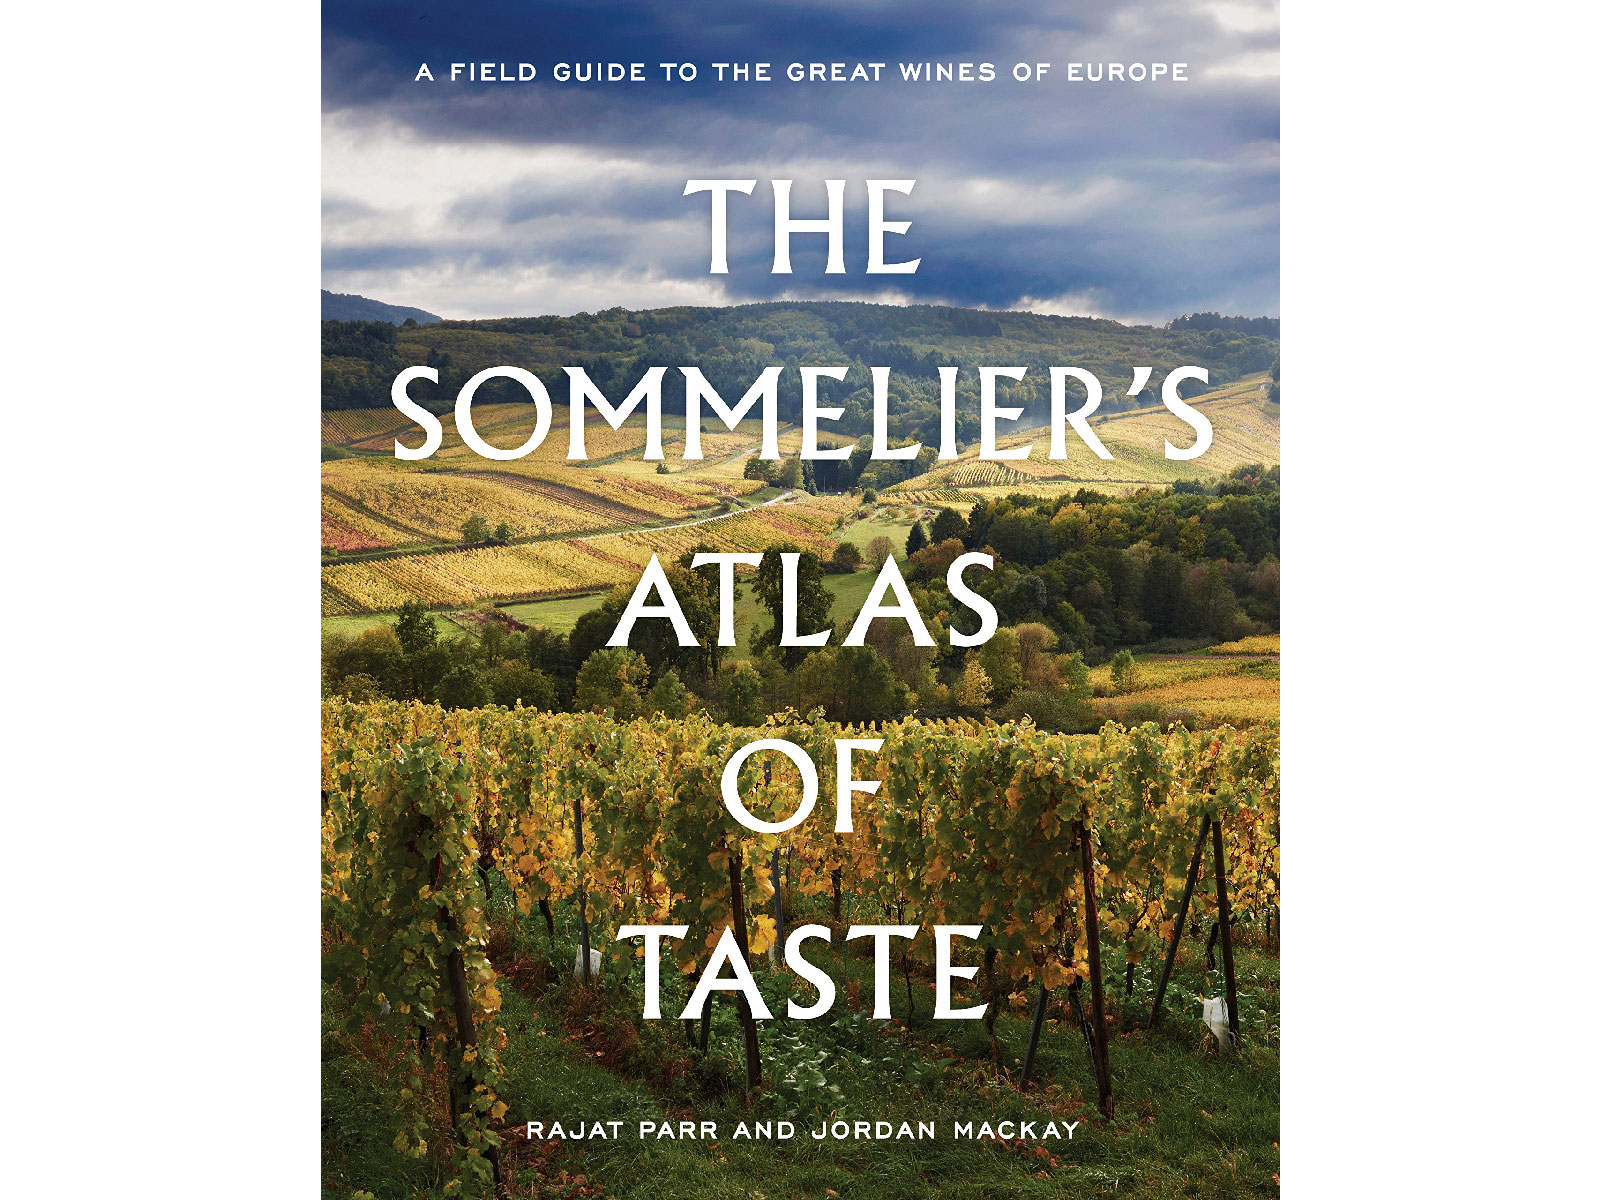 The Sommelier's Atlas